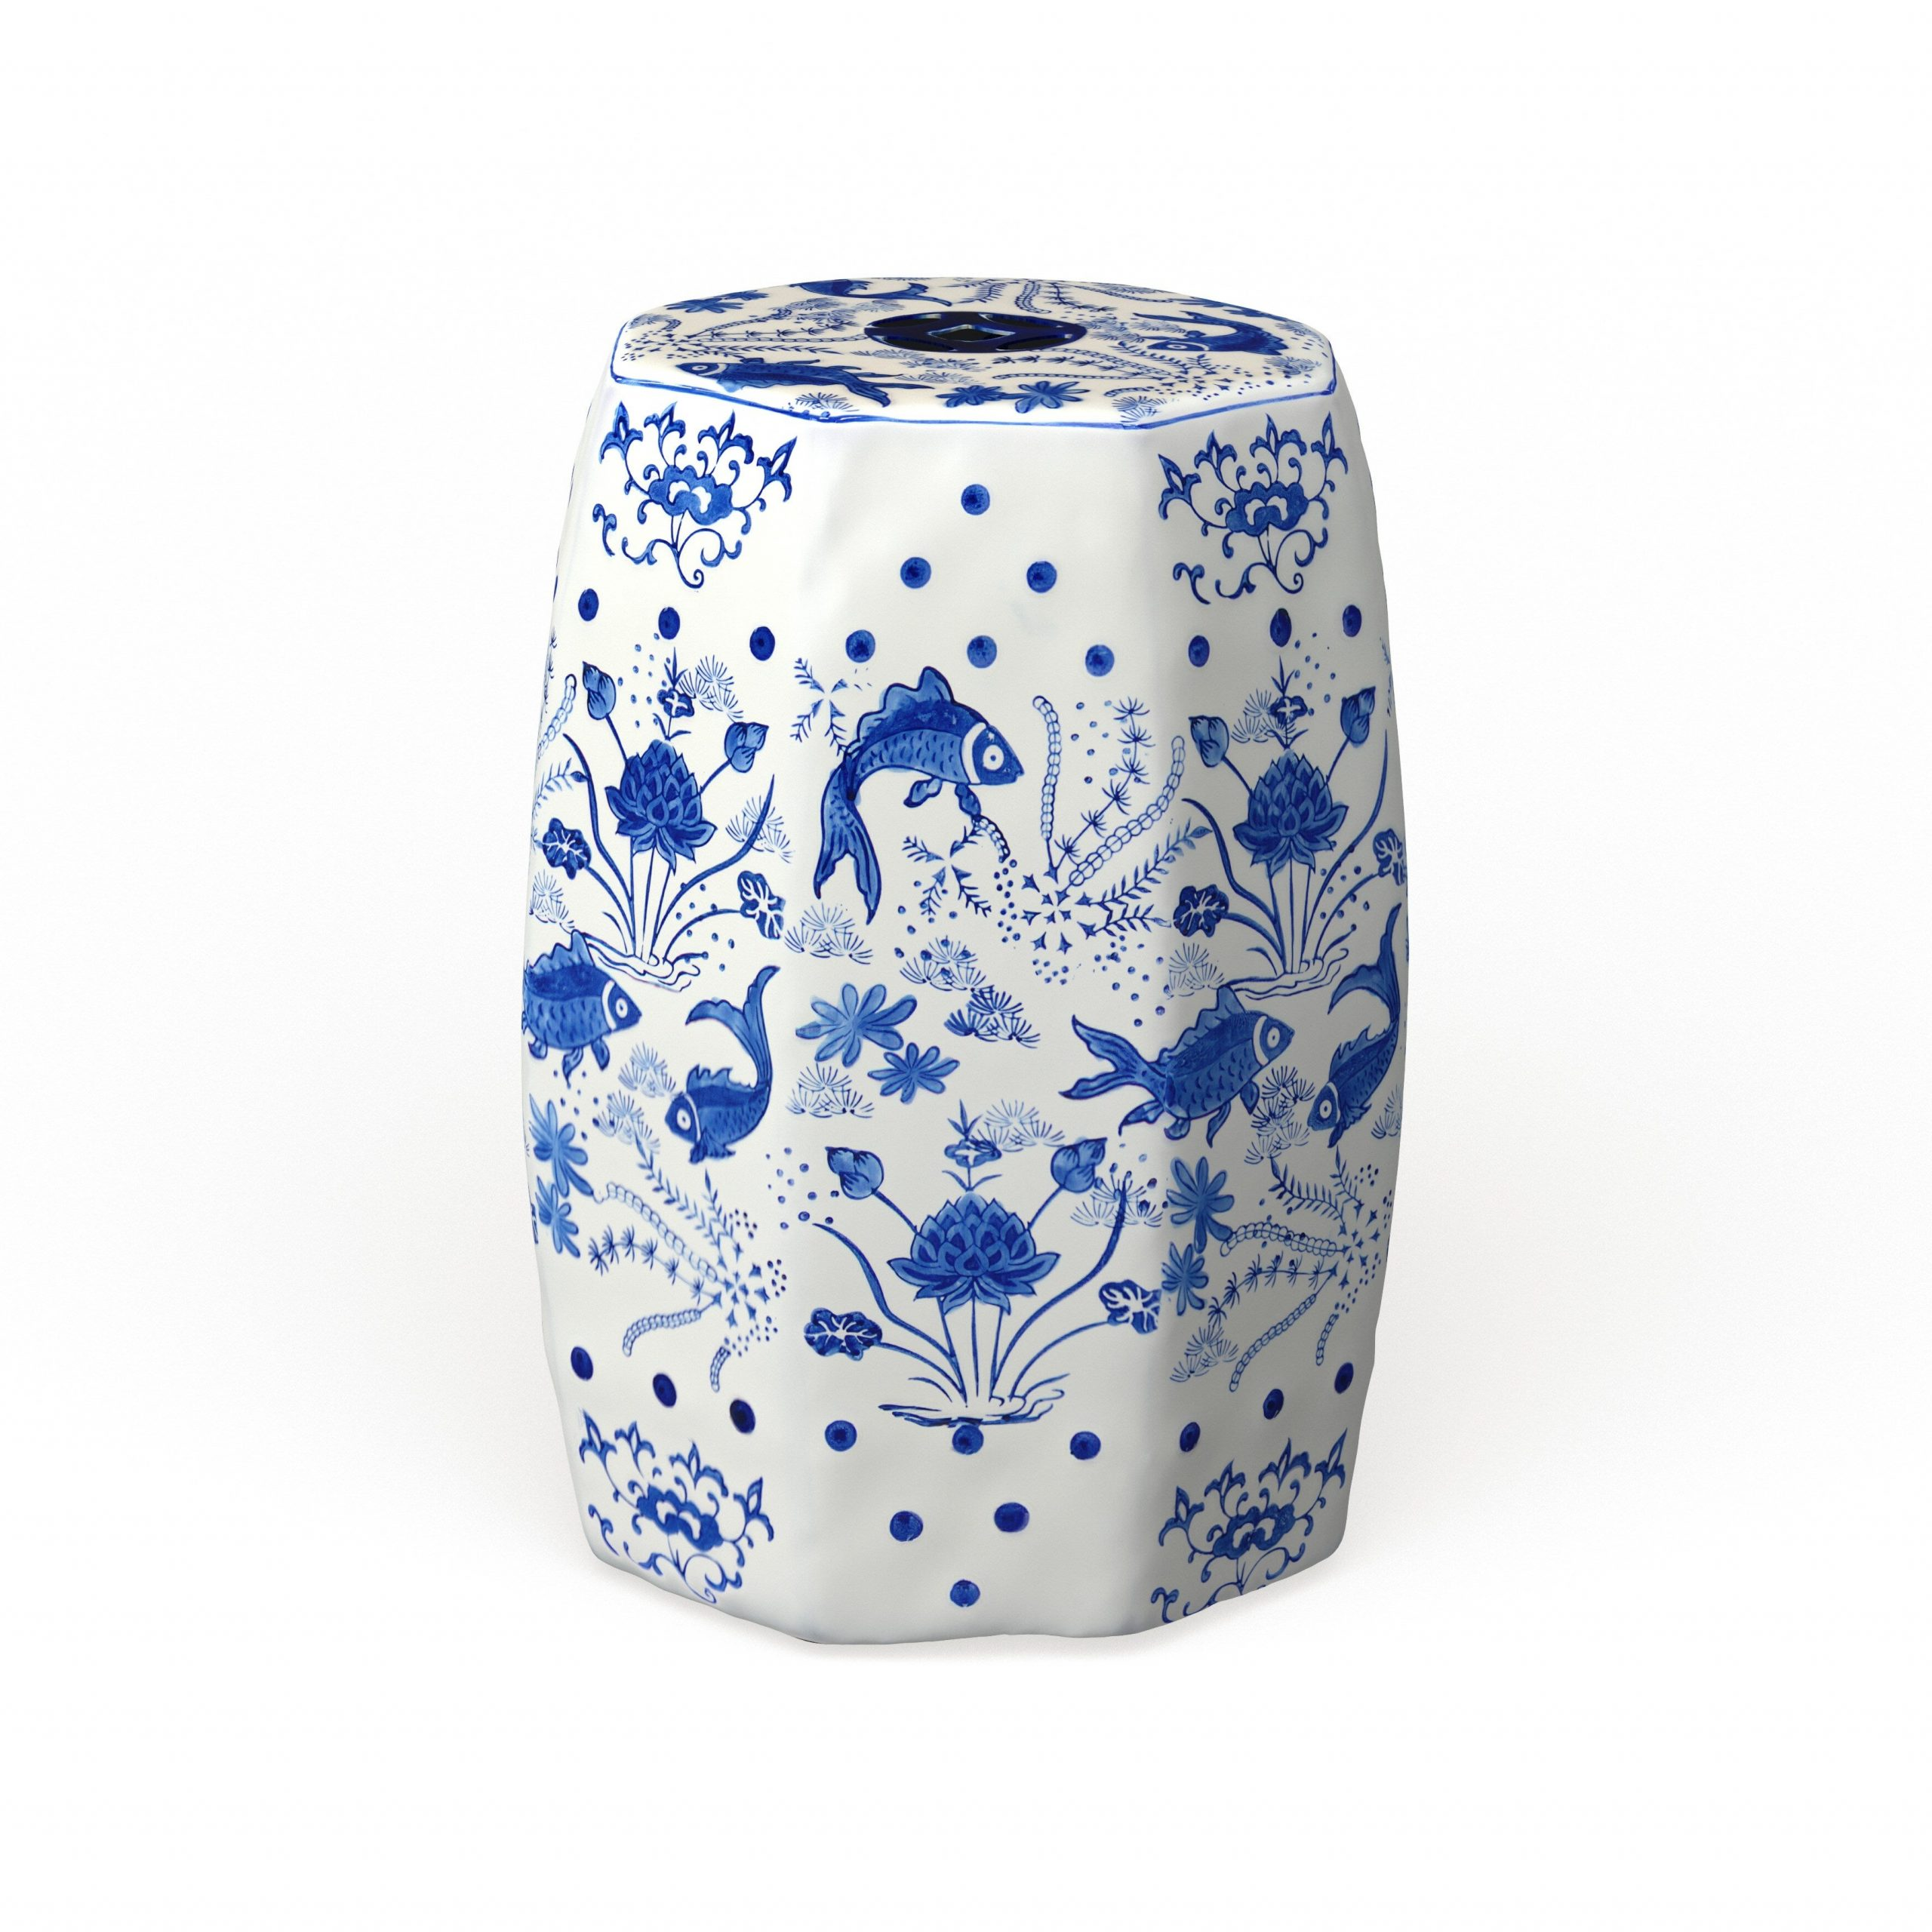 Safavieh Cloud 9 Chinoiserie Blue Koi Ceramic Decorative Garden Stool In Trendy Renee Porcelain Garden Stools (View 26 of 30)